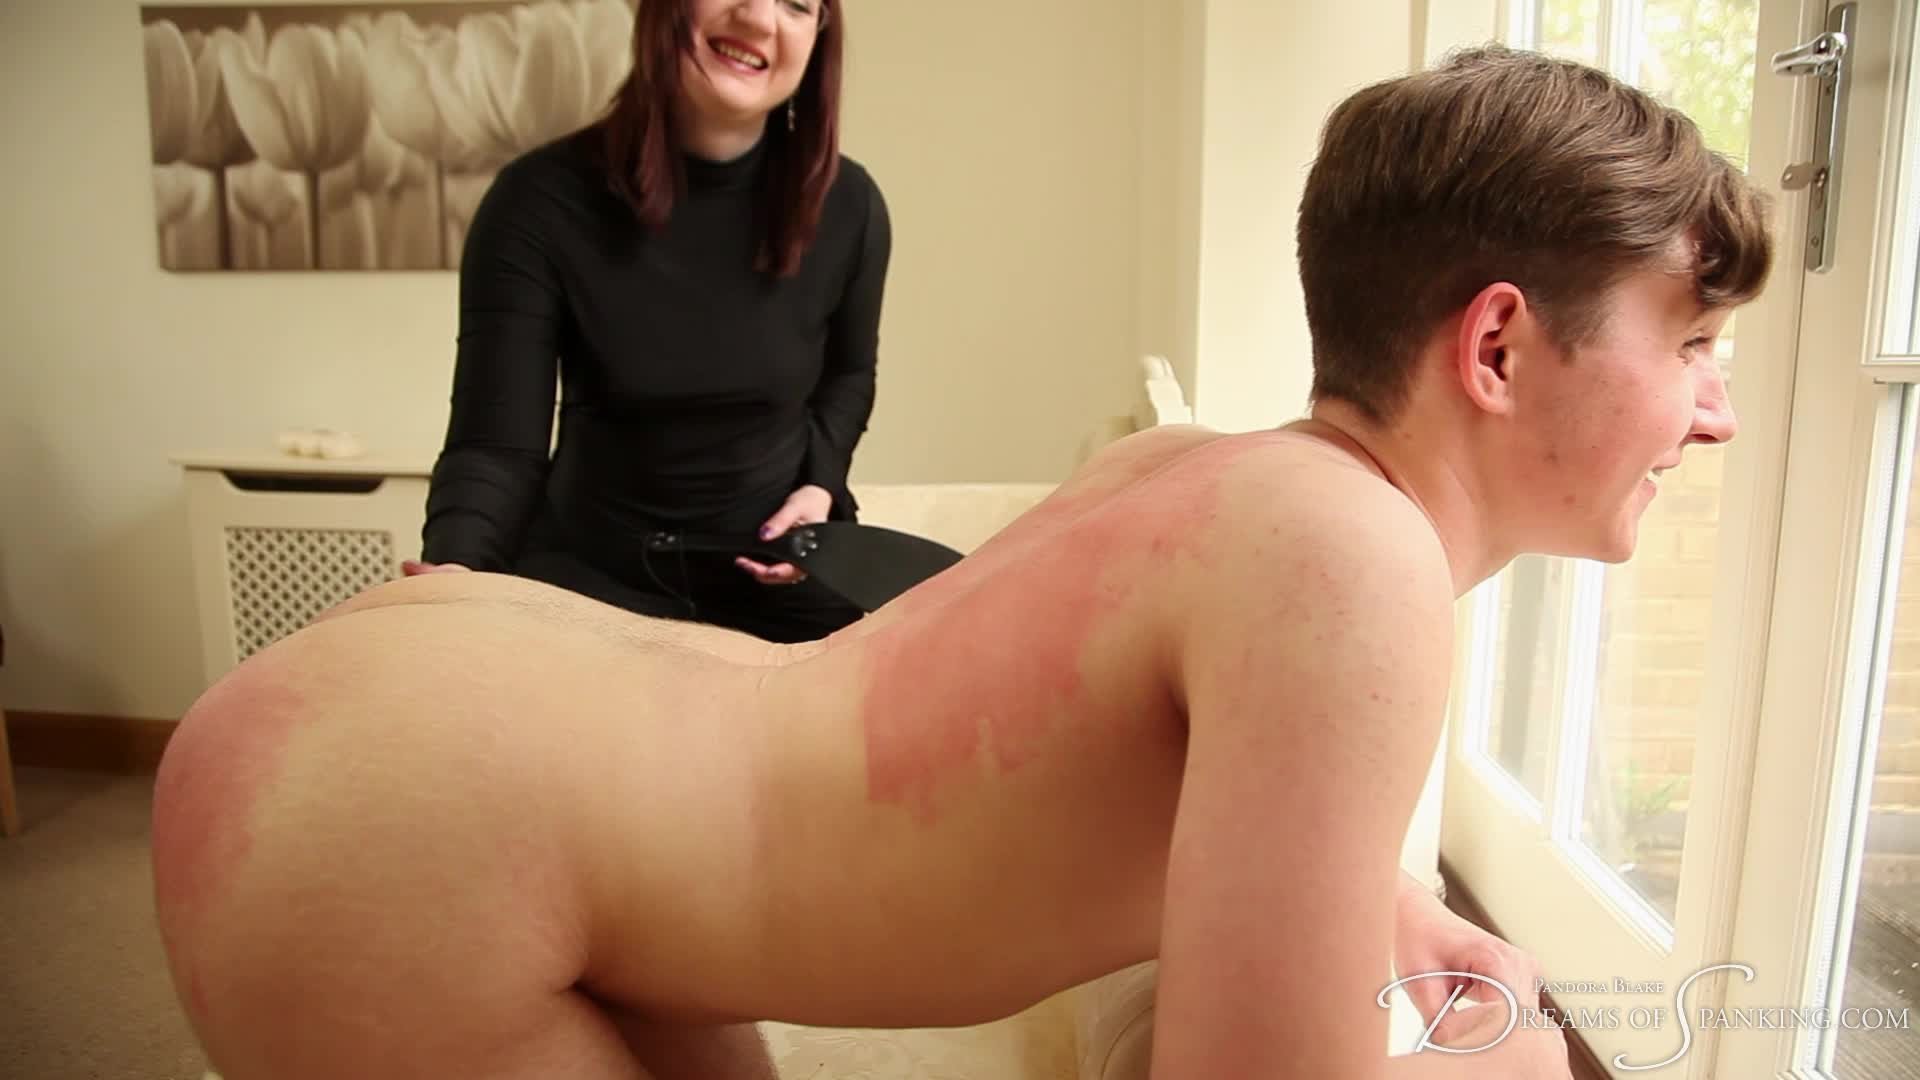 bad boy naked spanked asses by a sexy women